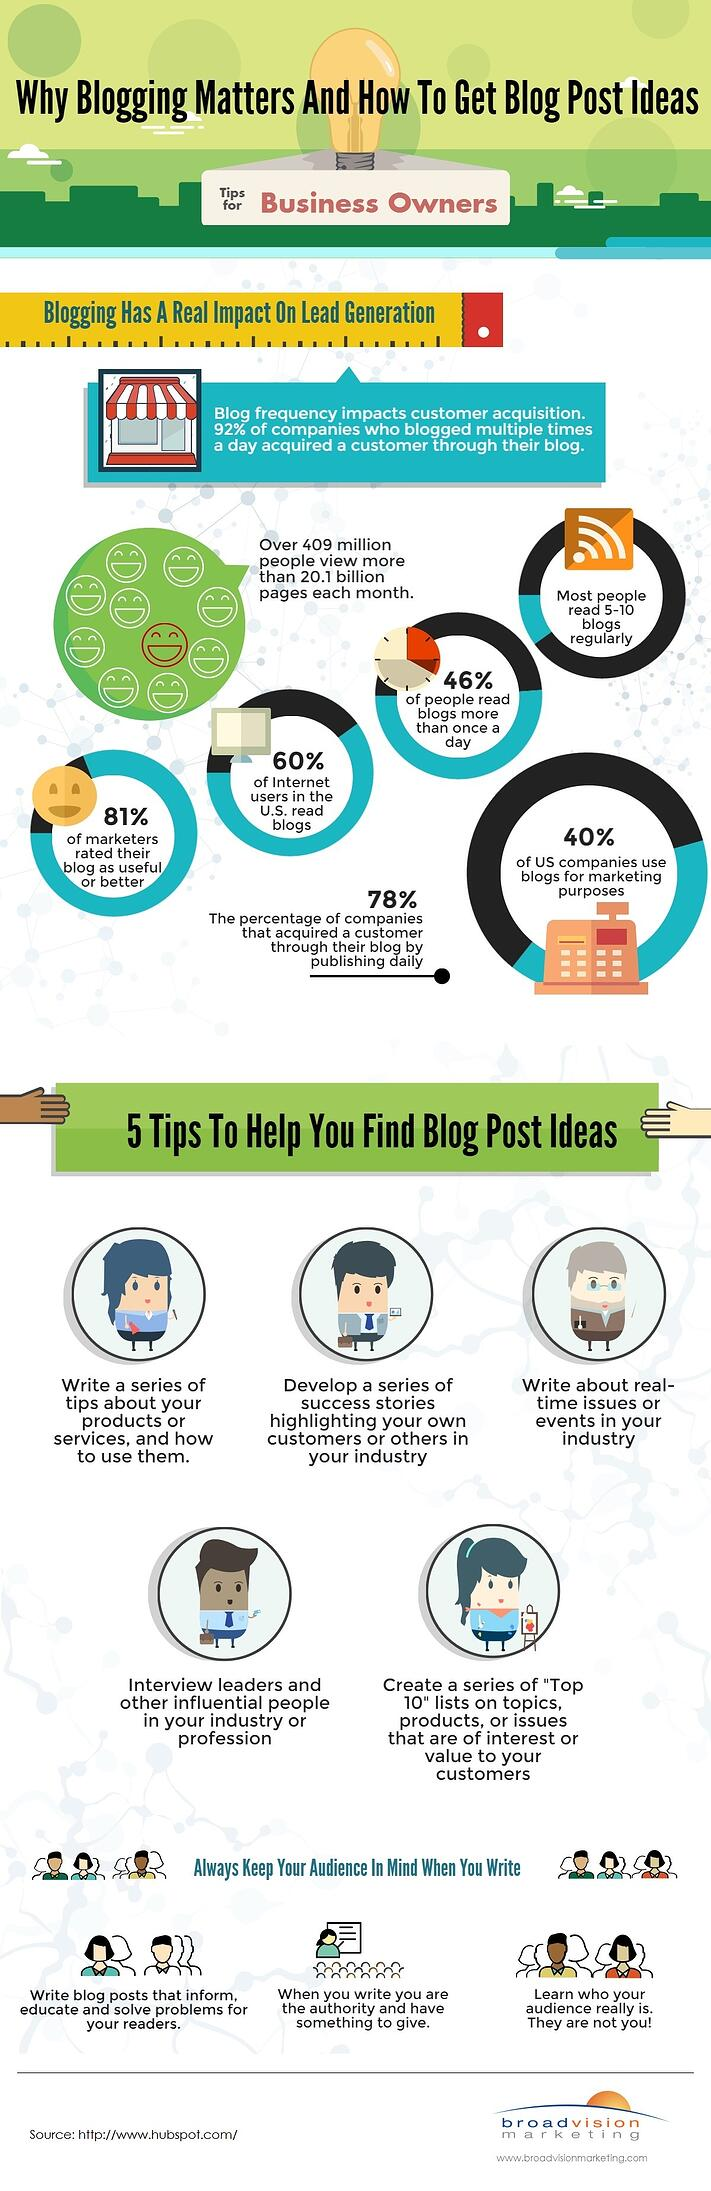 how-to-get-blog-post-ideas-broadvisionmarketing.jpg